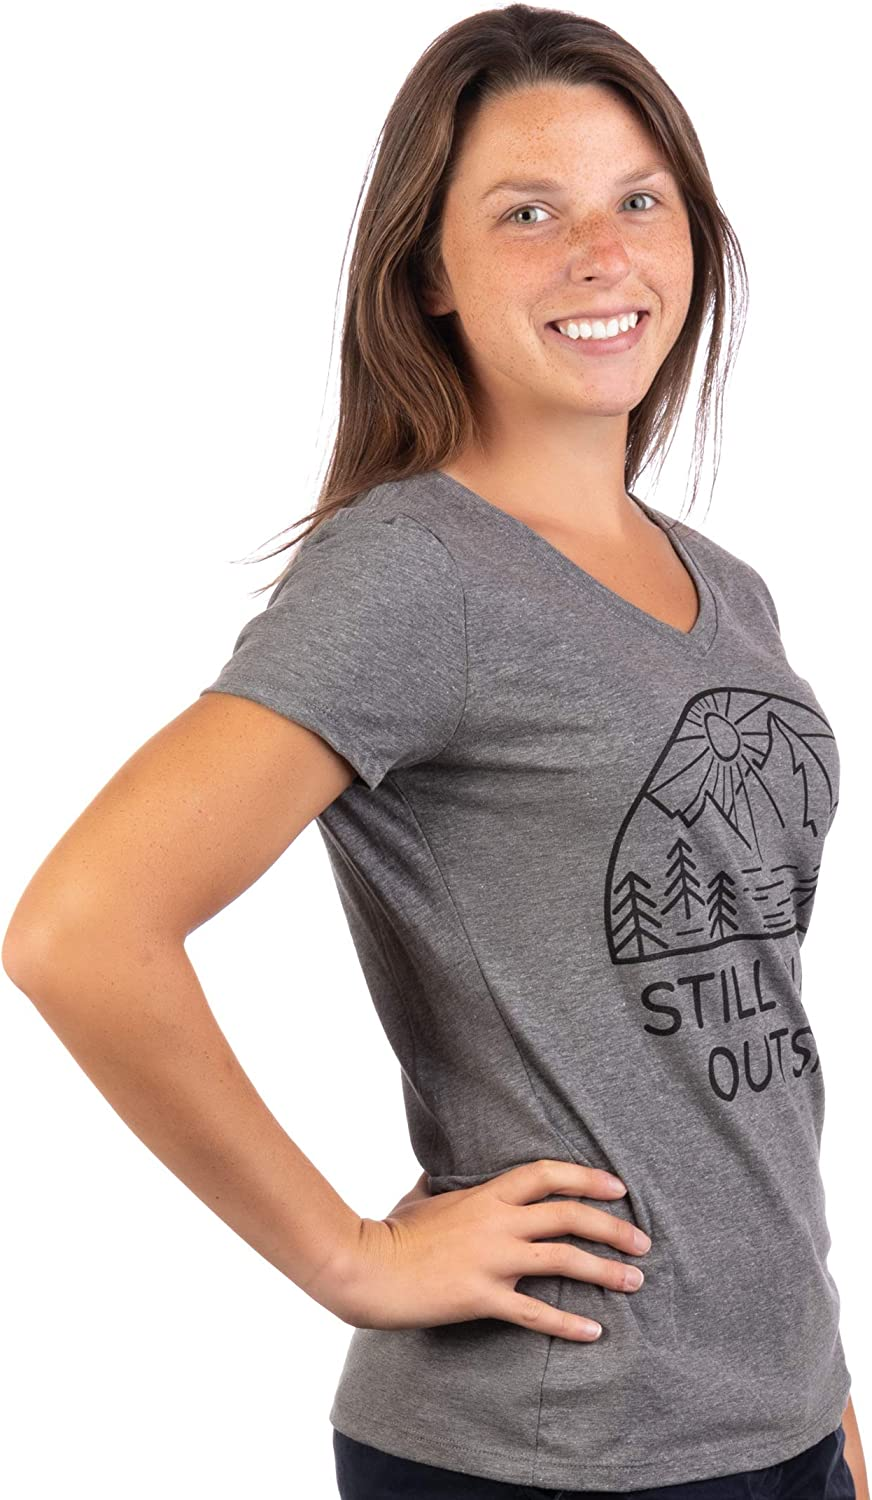 Funny Cool Camping Hiking Camp Hike Women Outdoors Shirt Top Still Plays Outside